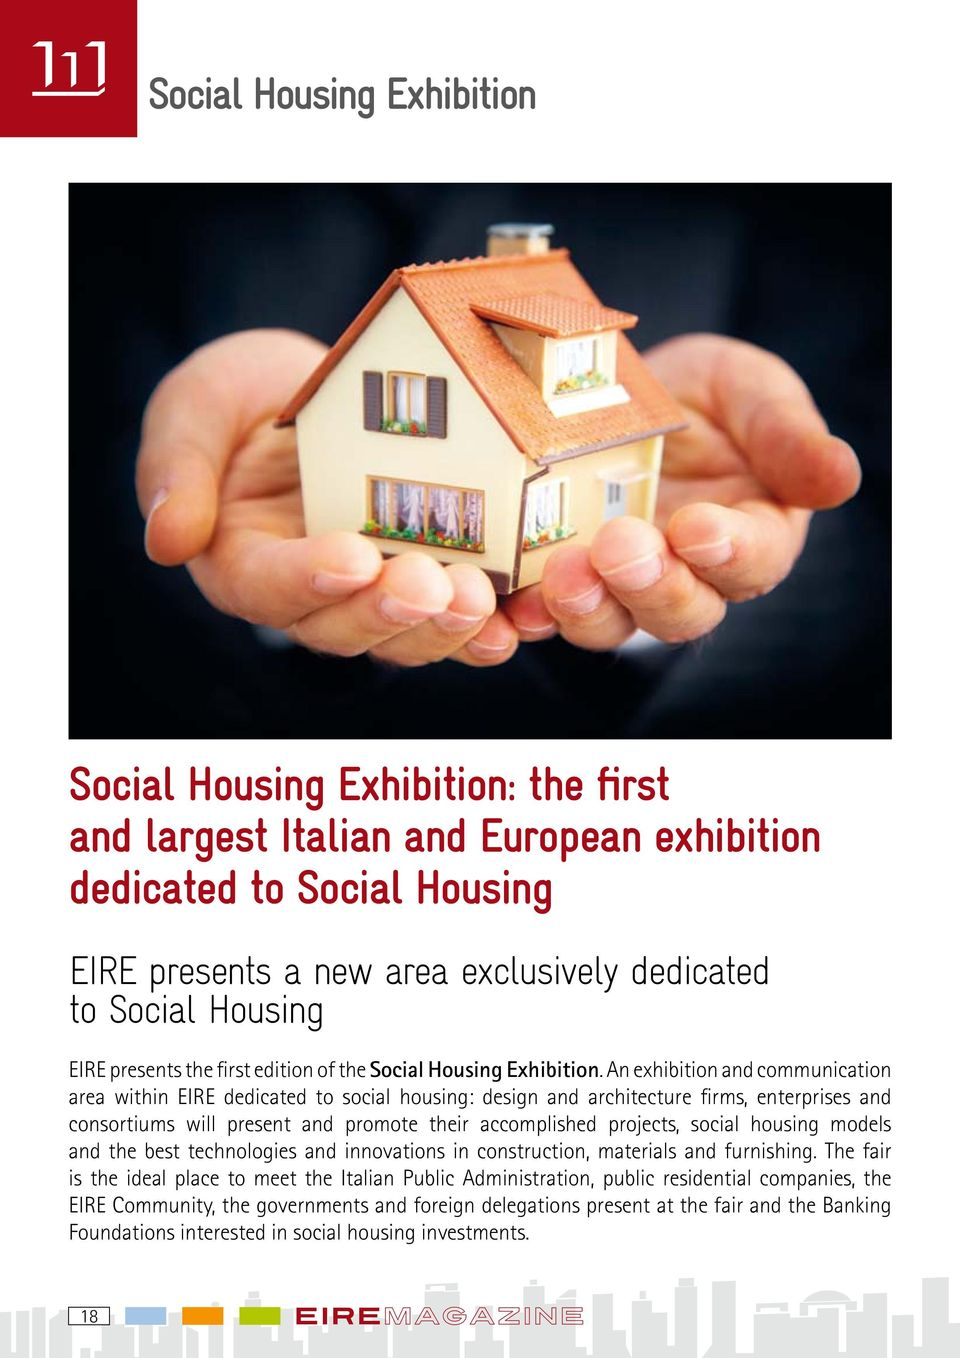 An exhibition and communication area within EIRE dedicated to social housing: design and architecture firms, enterprises and consortiums will present and promote their accomplished projects, social